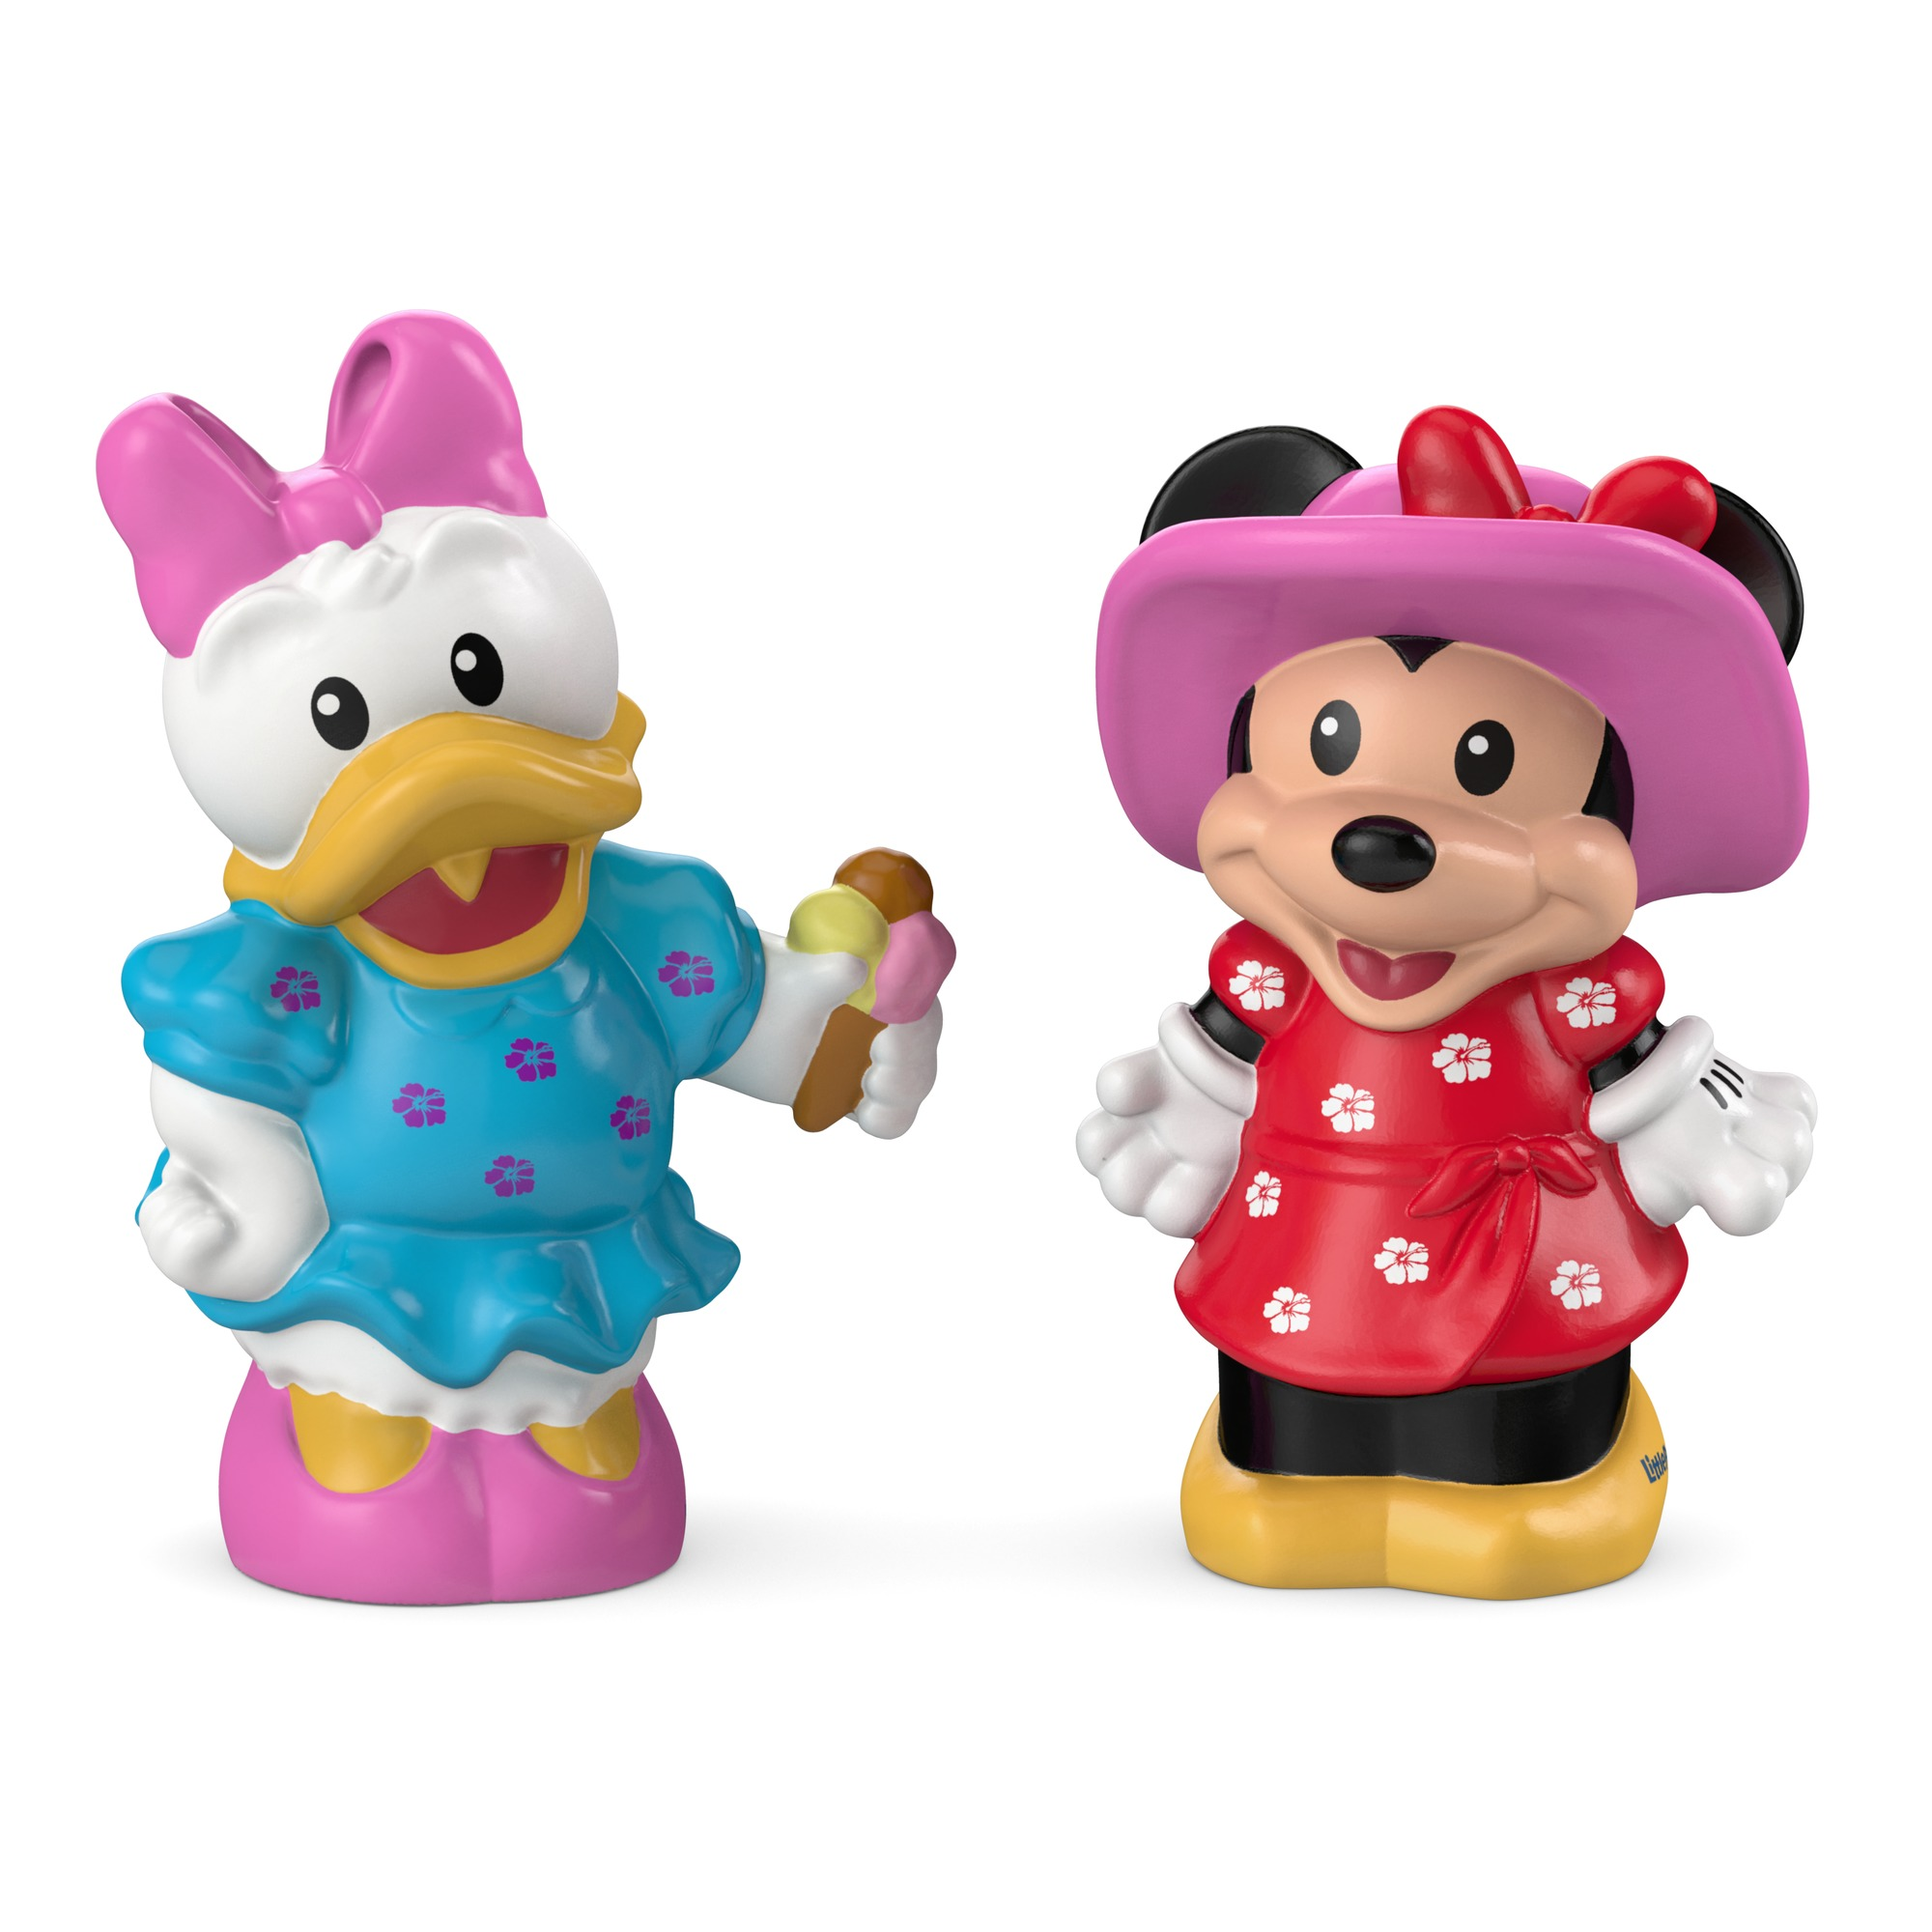 Magic of Disney Minnie & Daisy Buddy Pack By Little People